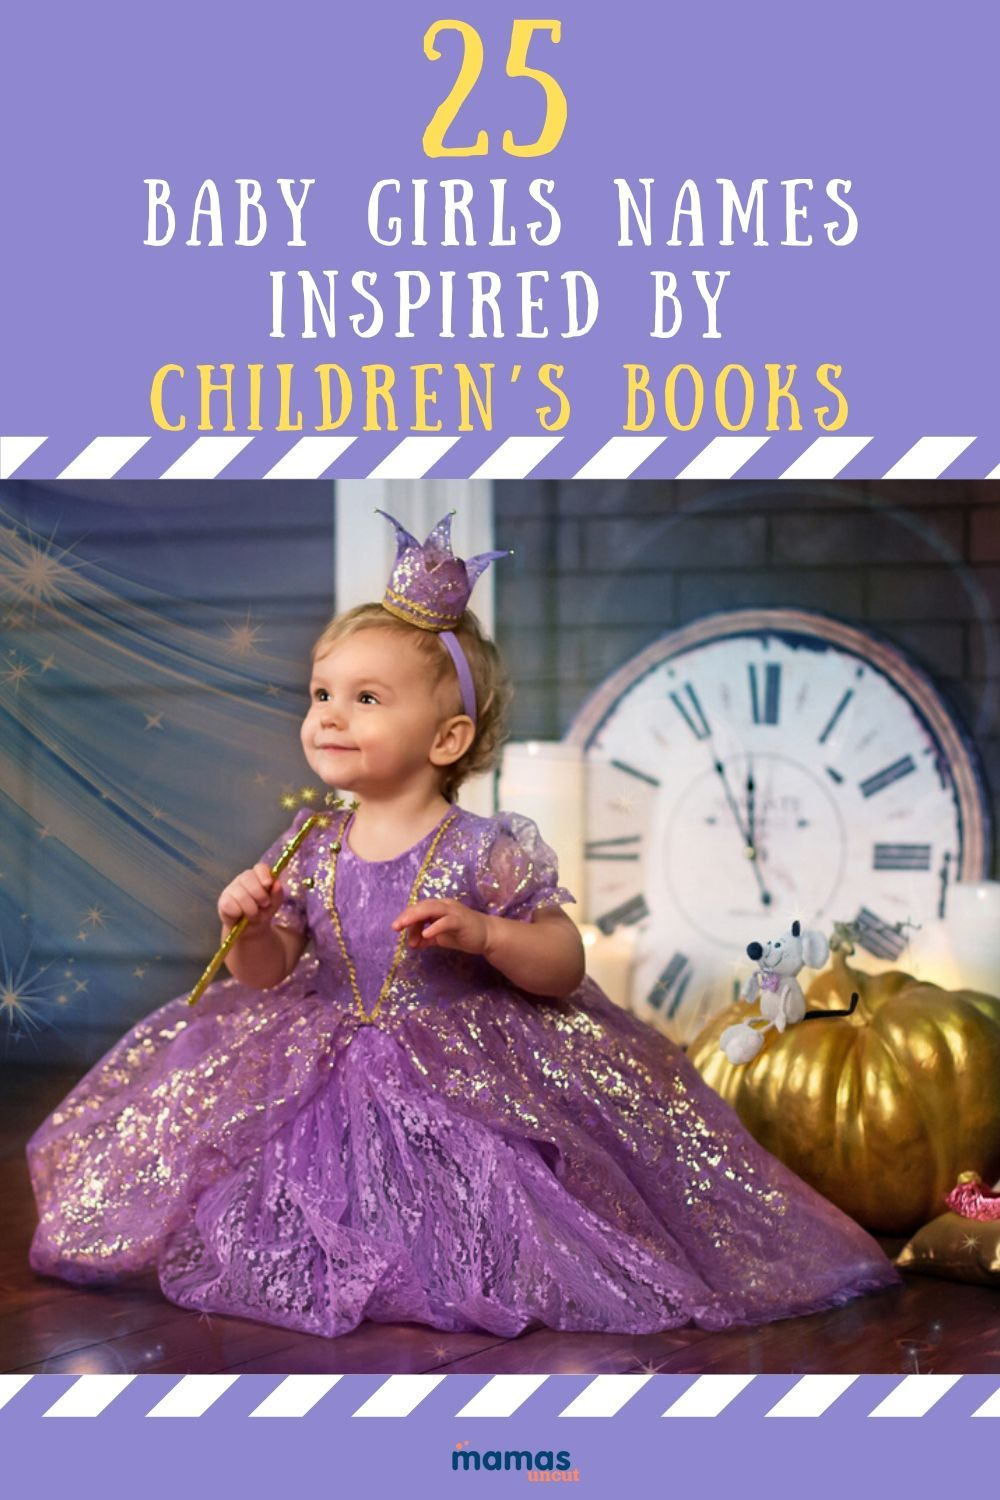 25 Magical Baby Names for Girls Inspired by Children's Books  From Amelia Bedelia to Willa of the Wood, we've chosen our favorite baby names for girls inspired by the most beloved children's stories ever told.  #babynames #girlnames #childrensbooks